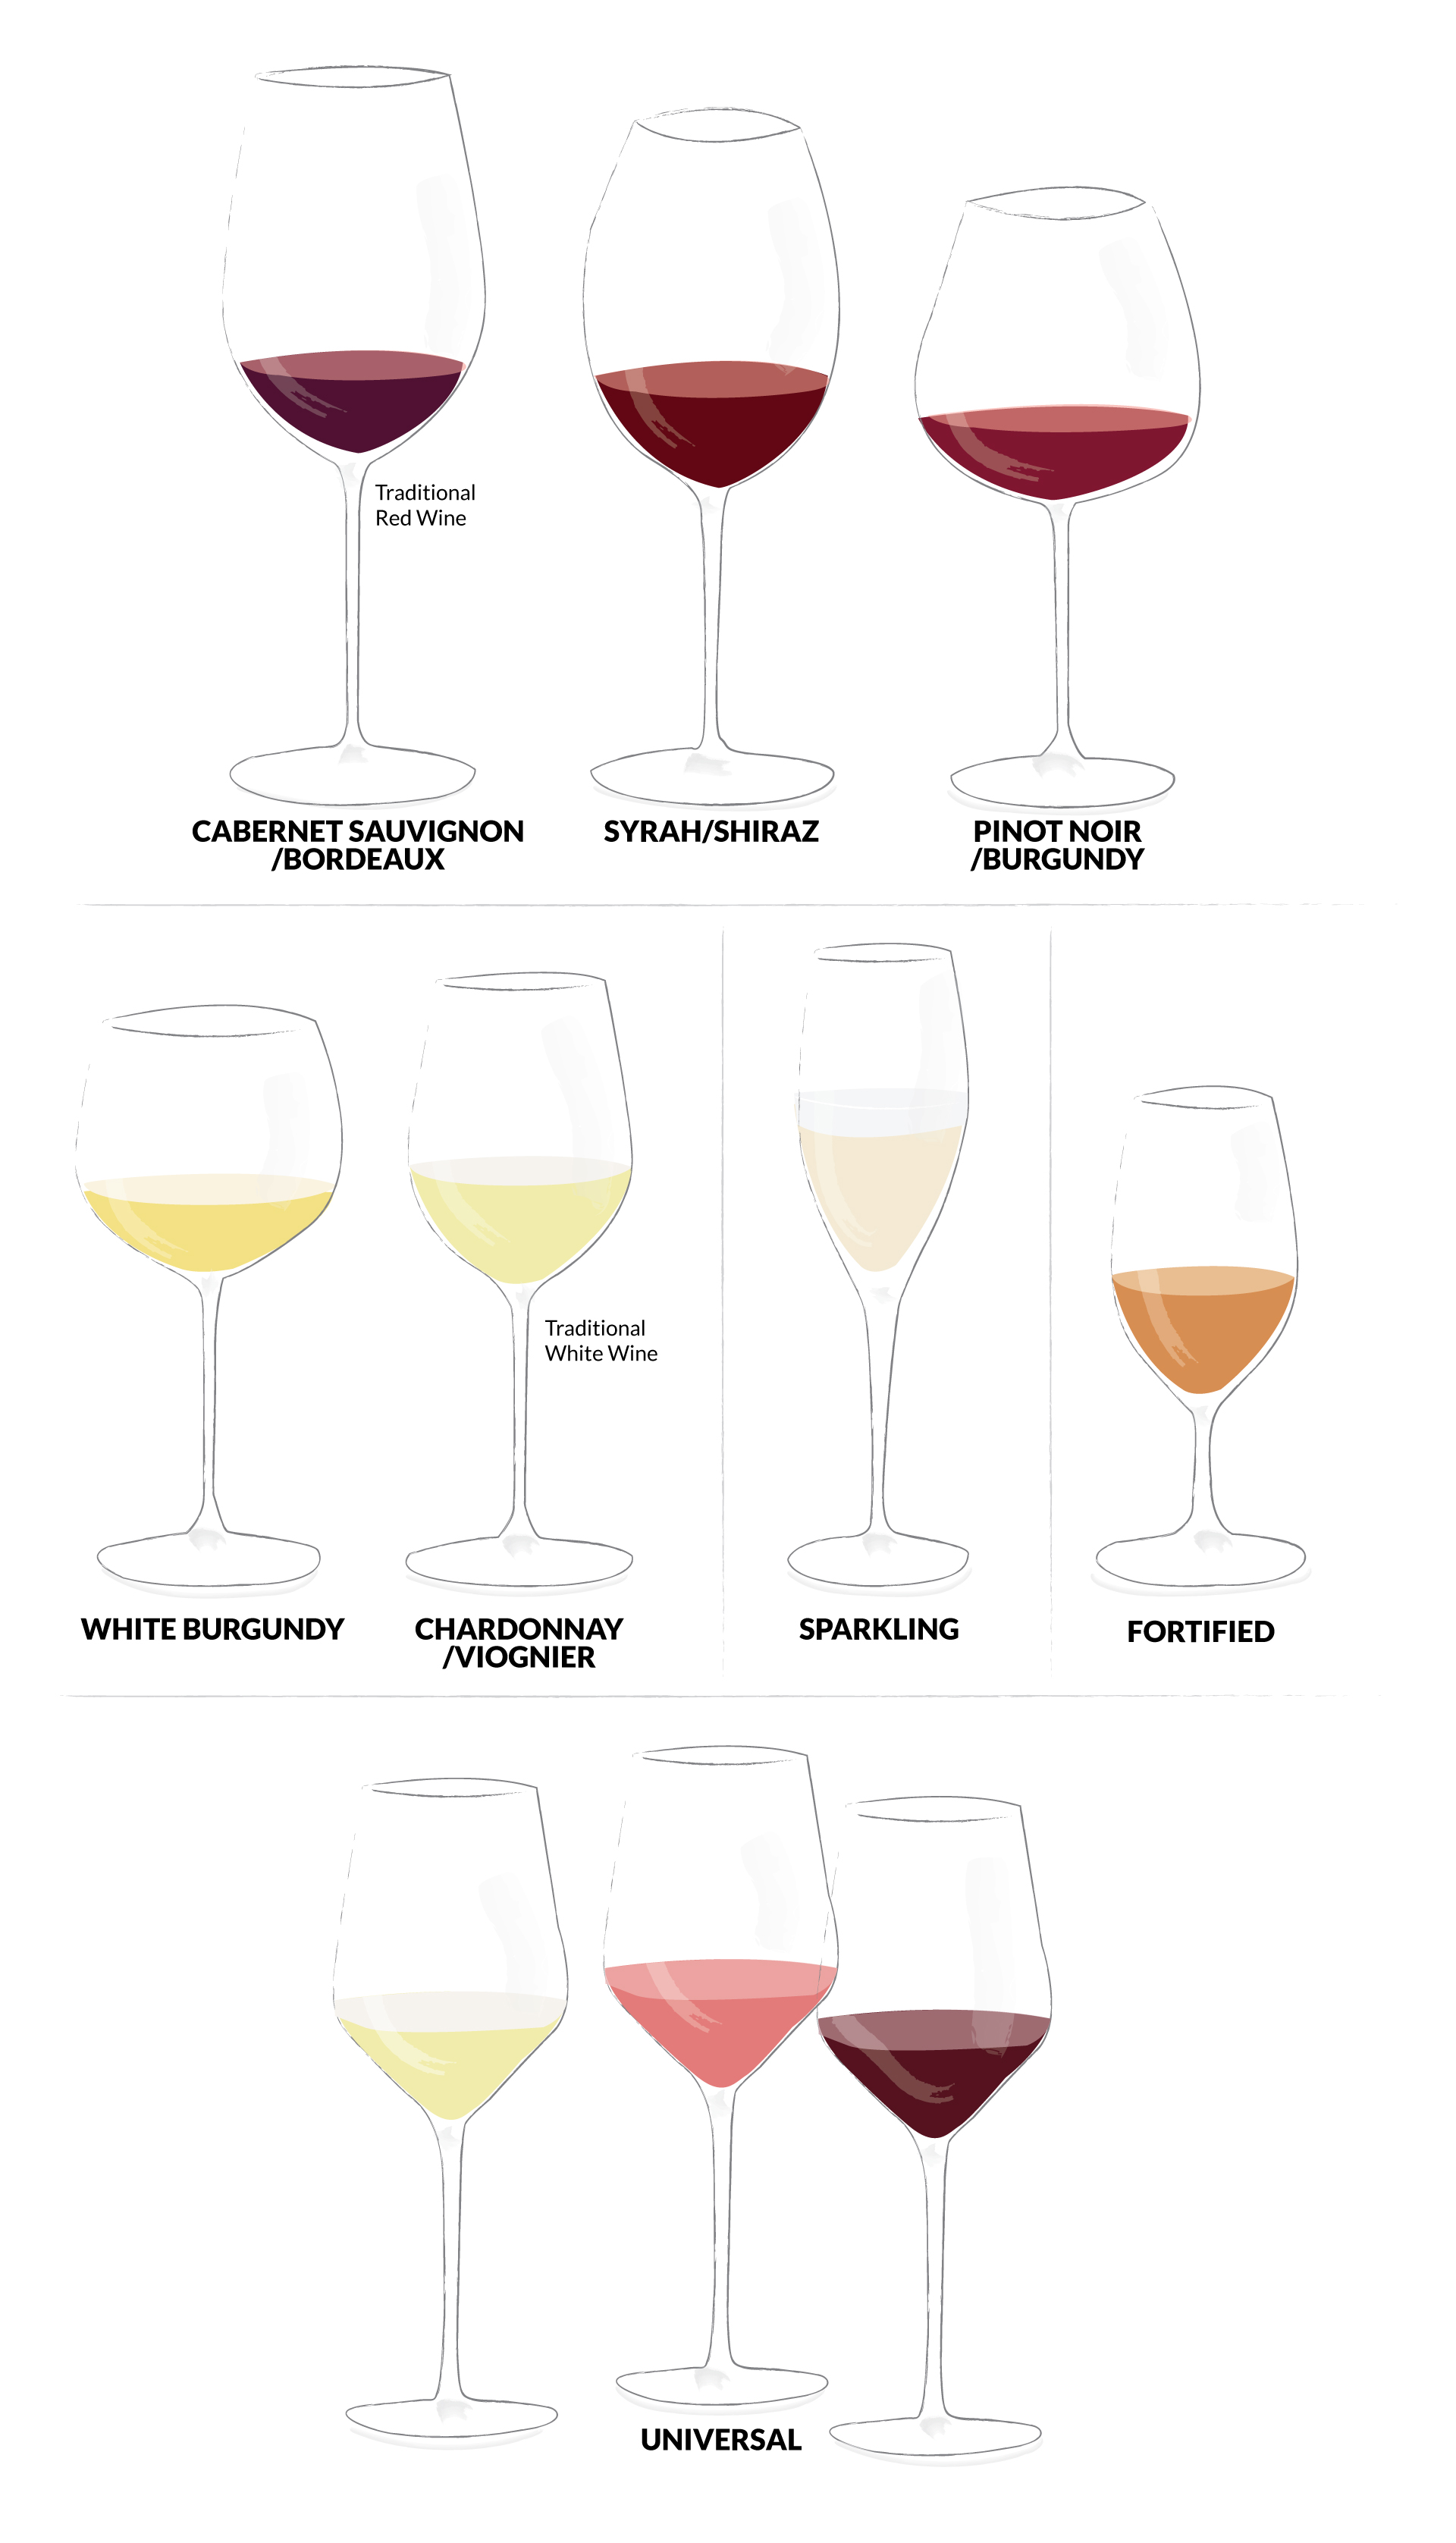 image of eight different wine glass shapes